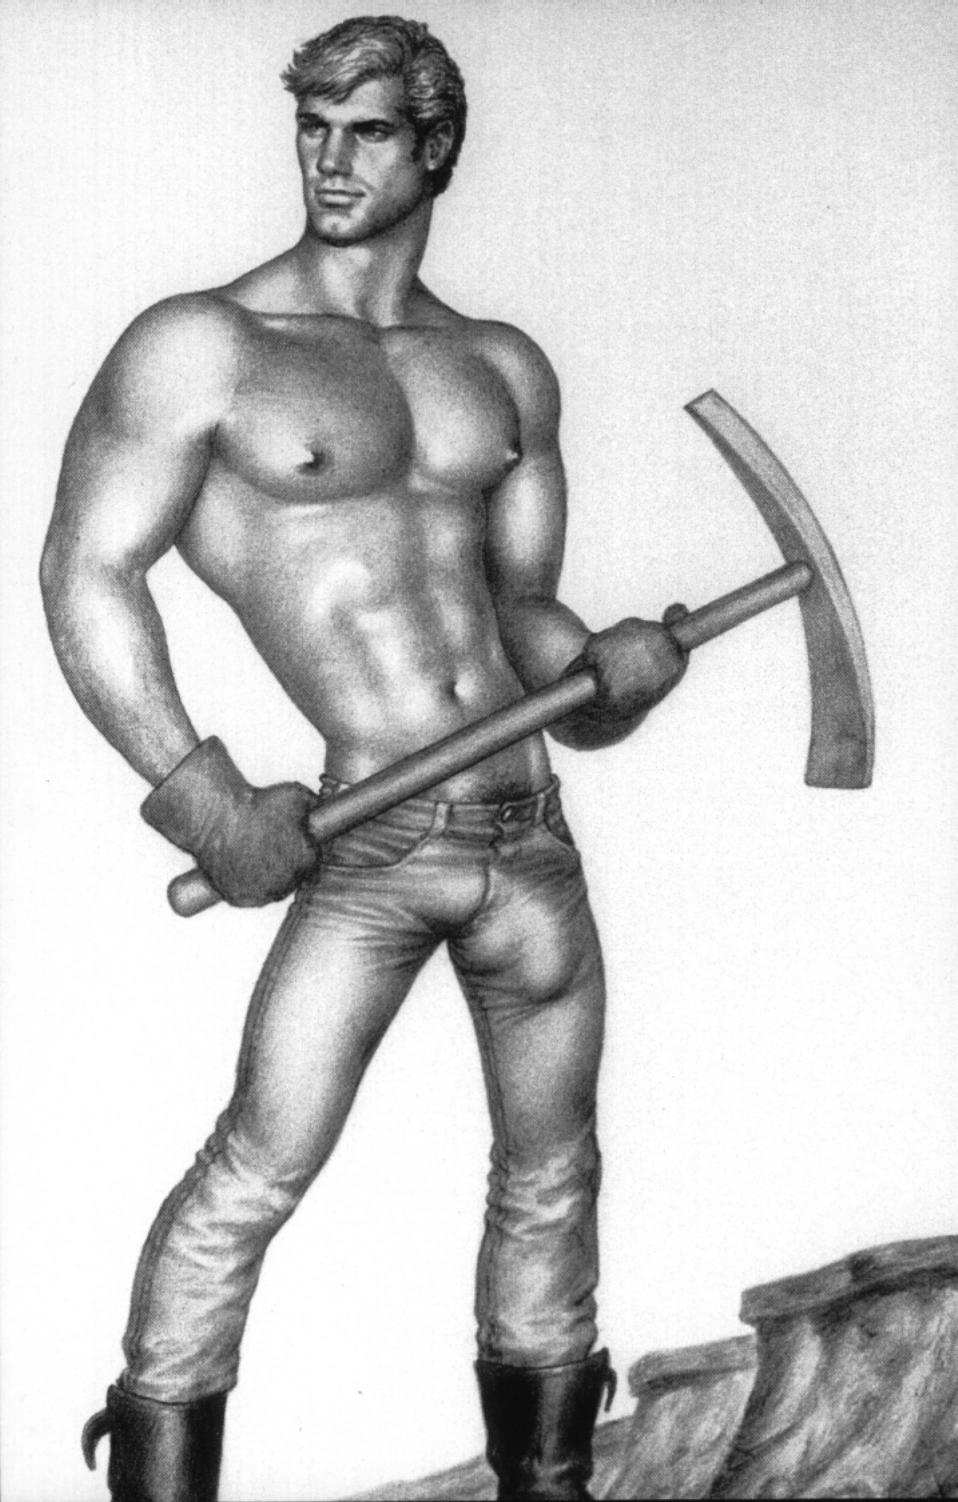 Gallery fisting tom finland adult